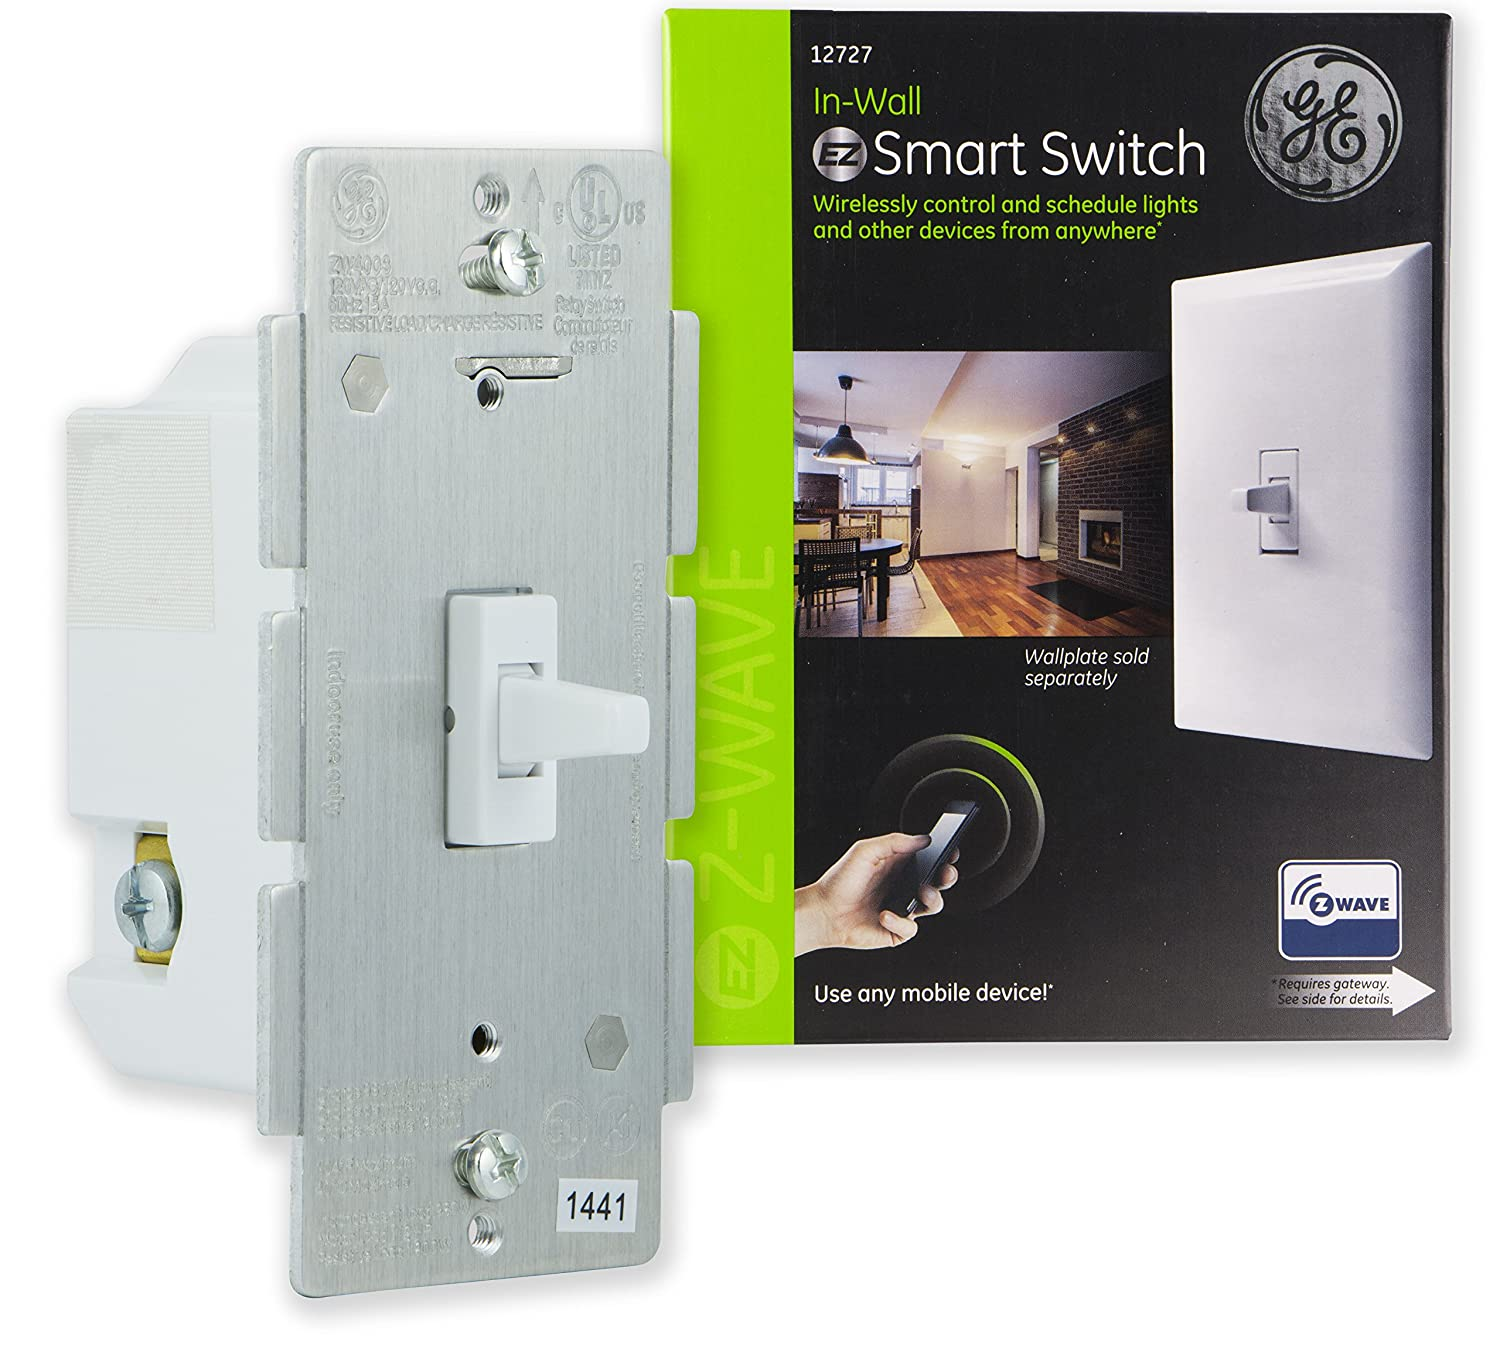 Ge Z Wave Wireless Smart Lighting Control Light Switch Toggle Style Back Box Particularly With Multigang Switches In 2way Or 3 On Off Wall White Repeater Range Extender Zwave Hub Required Works